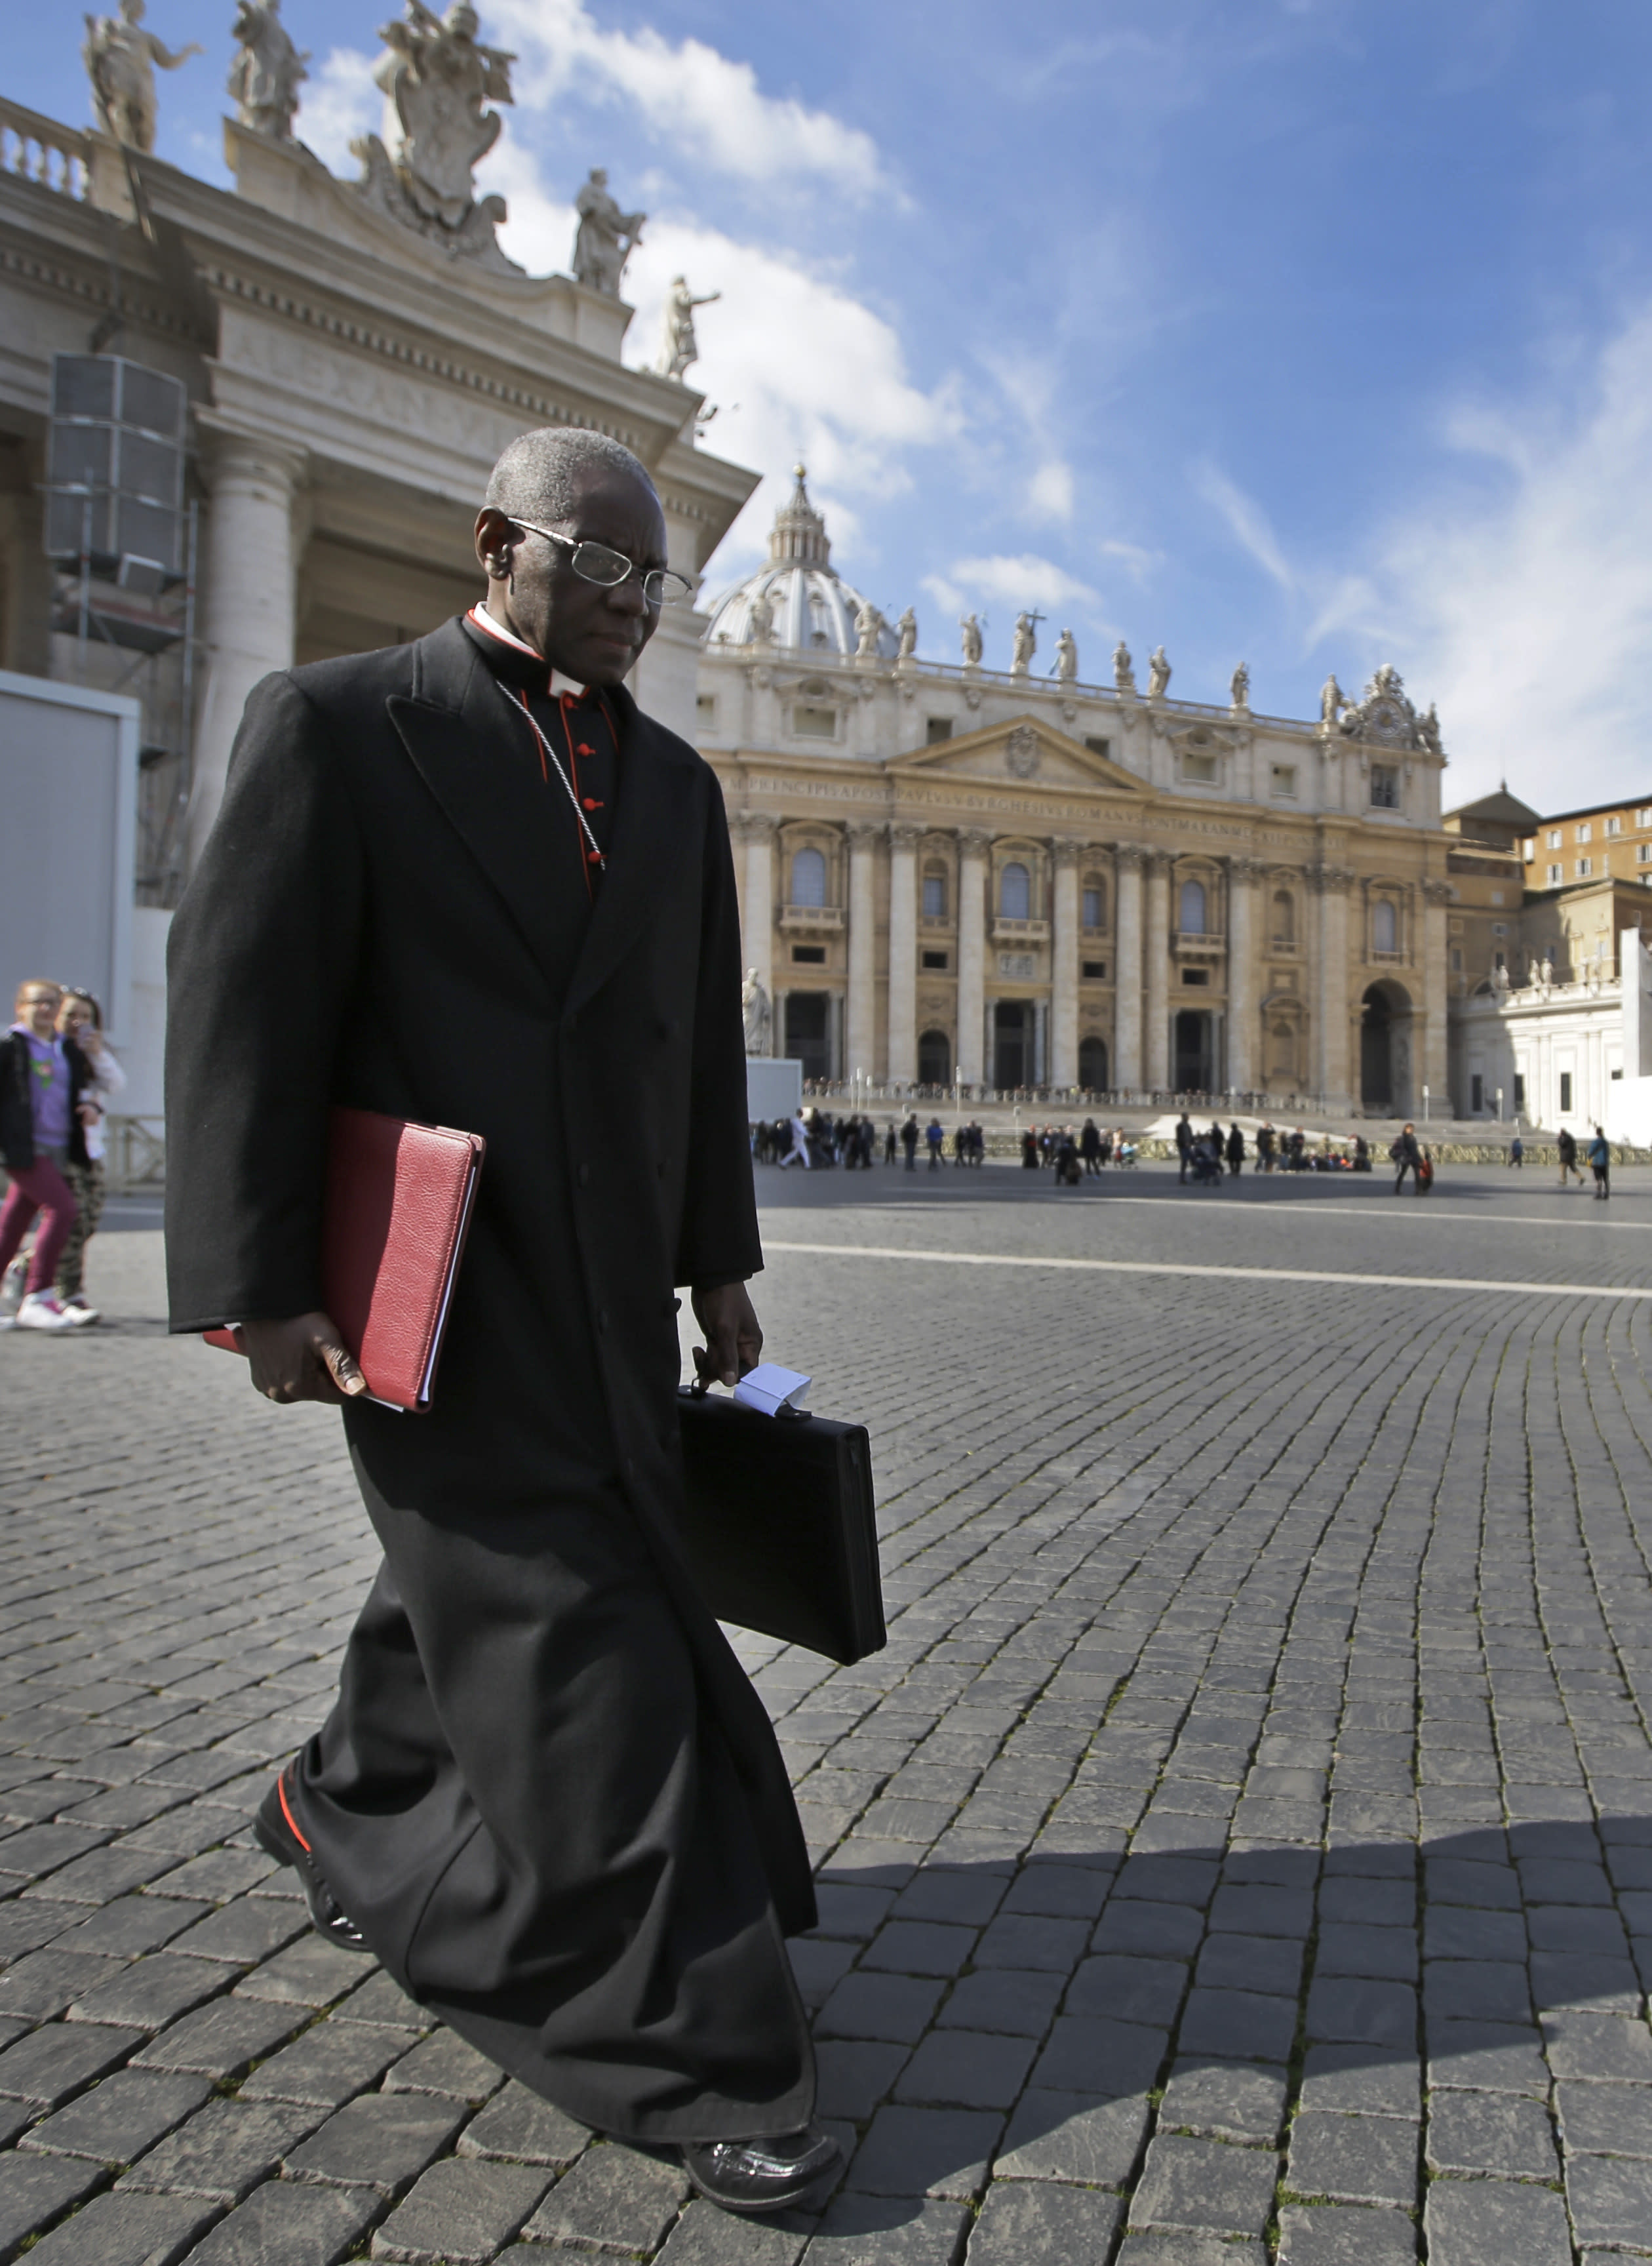 """FILE - In this Monday, March 4, 2013 file photo, Cardinal Robert Sarah, of Guinea, walks in St. Peter's Square after attending a cardinals' meeting, at the Vatican. Retired Pope Benedict XVI wrote the book, """"From the Depths of Our Hearts: Priesthood, Celibacy and the Crisis of the Catholic Church,"""" along with his fellow conservative, Guinean Cardinal Robert Sarah, who heads the Vatican's liturgy office and has been a quiet critic of Francis. (AP Photo/Andrew Medichini, File)"""